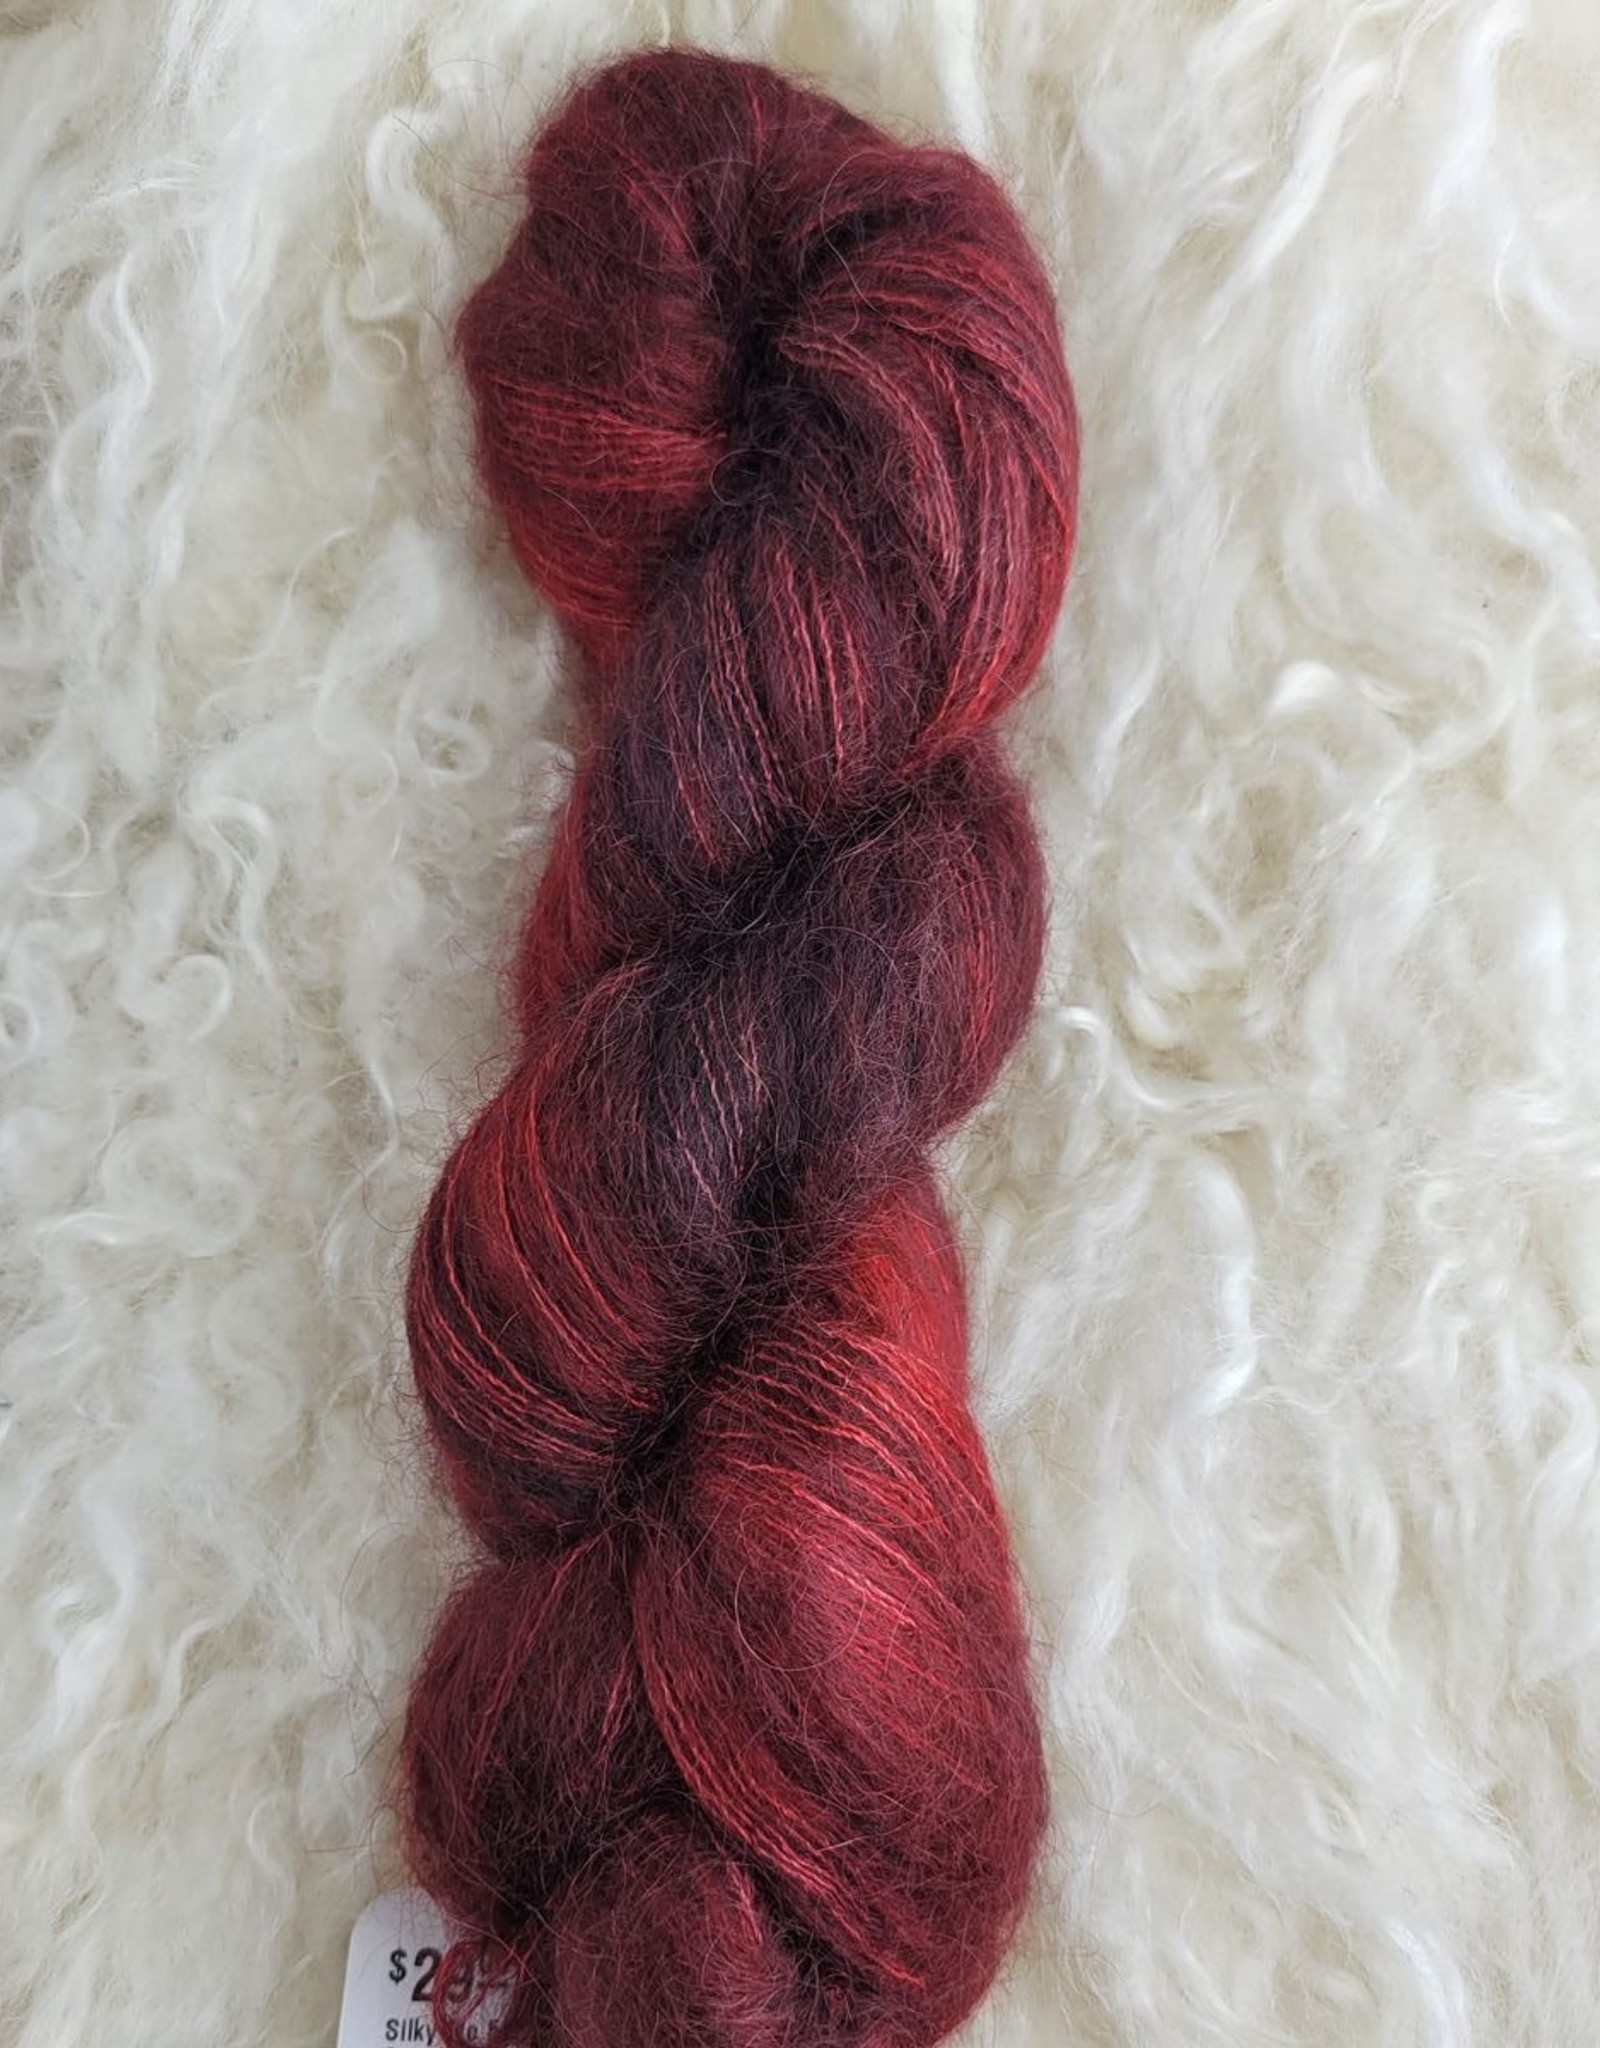 Palouse Yarn Co Silky Mo 50g Scorched Earth